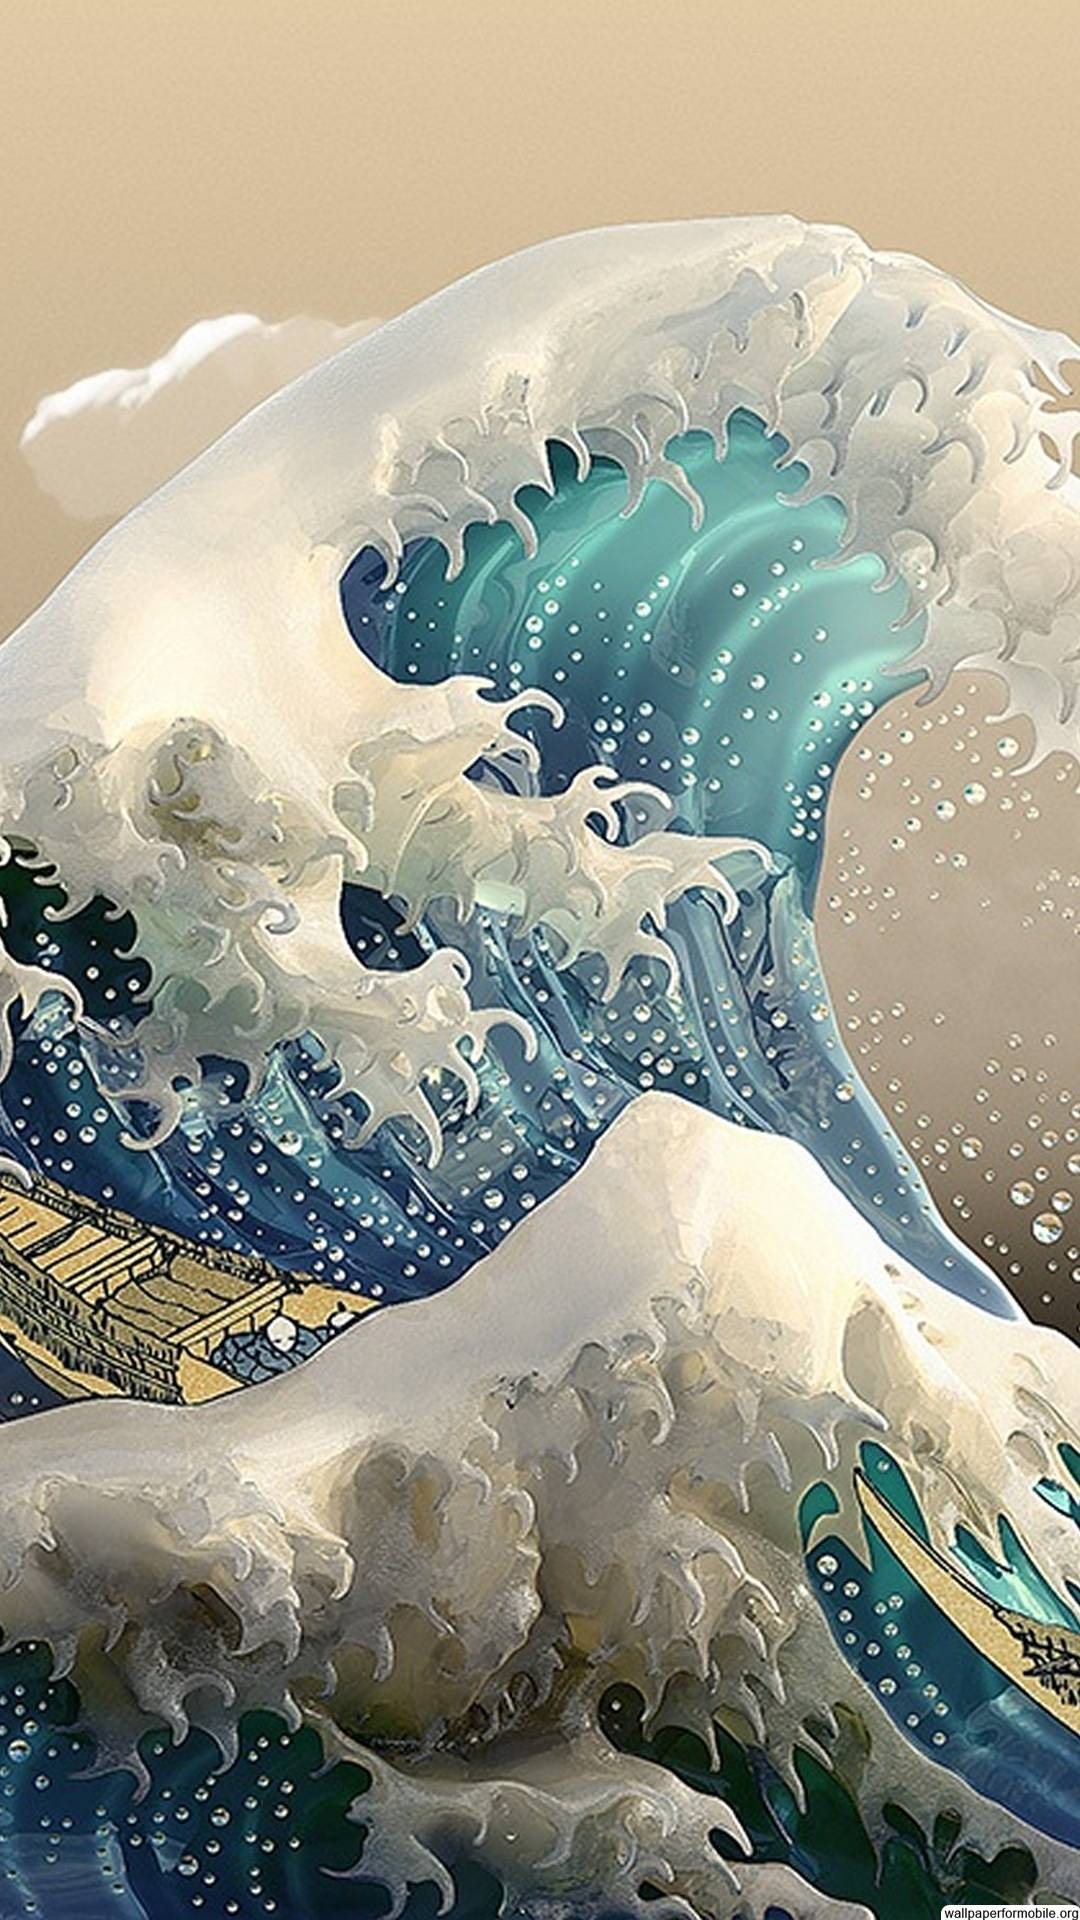 Black Removable Wallpaper Download Great Wave Off Kanagawa Wallpaper Gallery